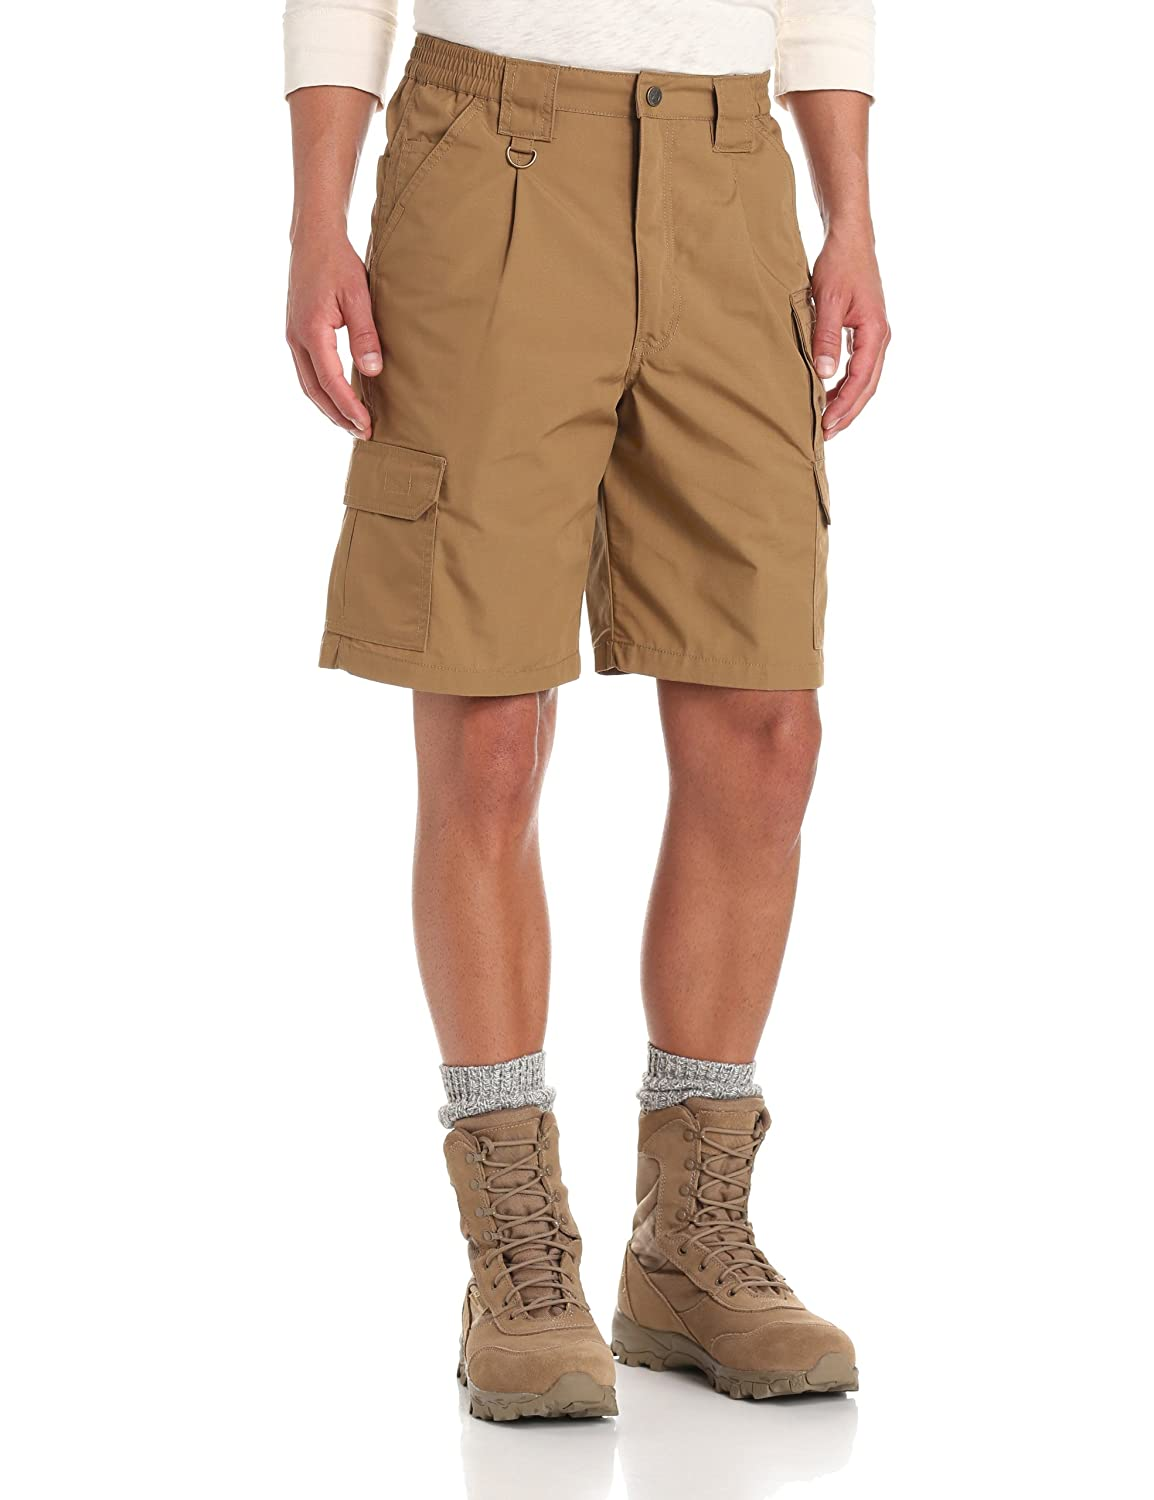 PROPPER F5233 Men's Tactical Short Coyote 50